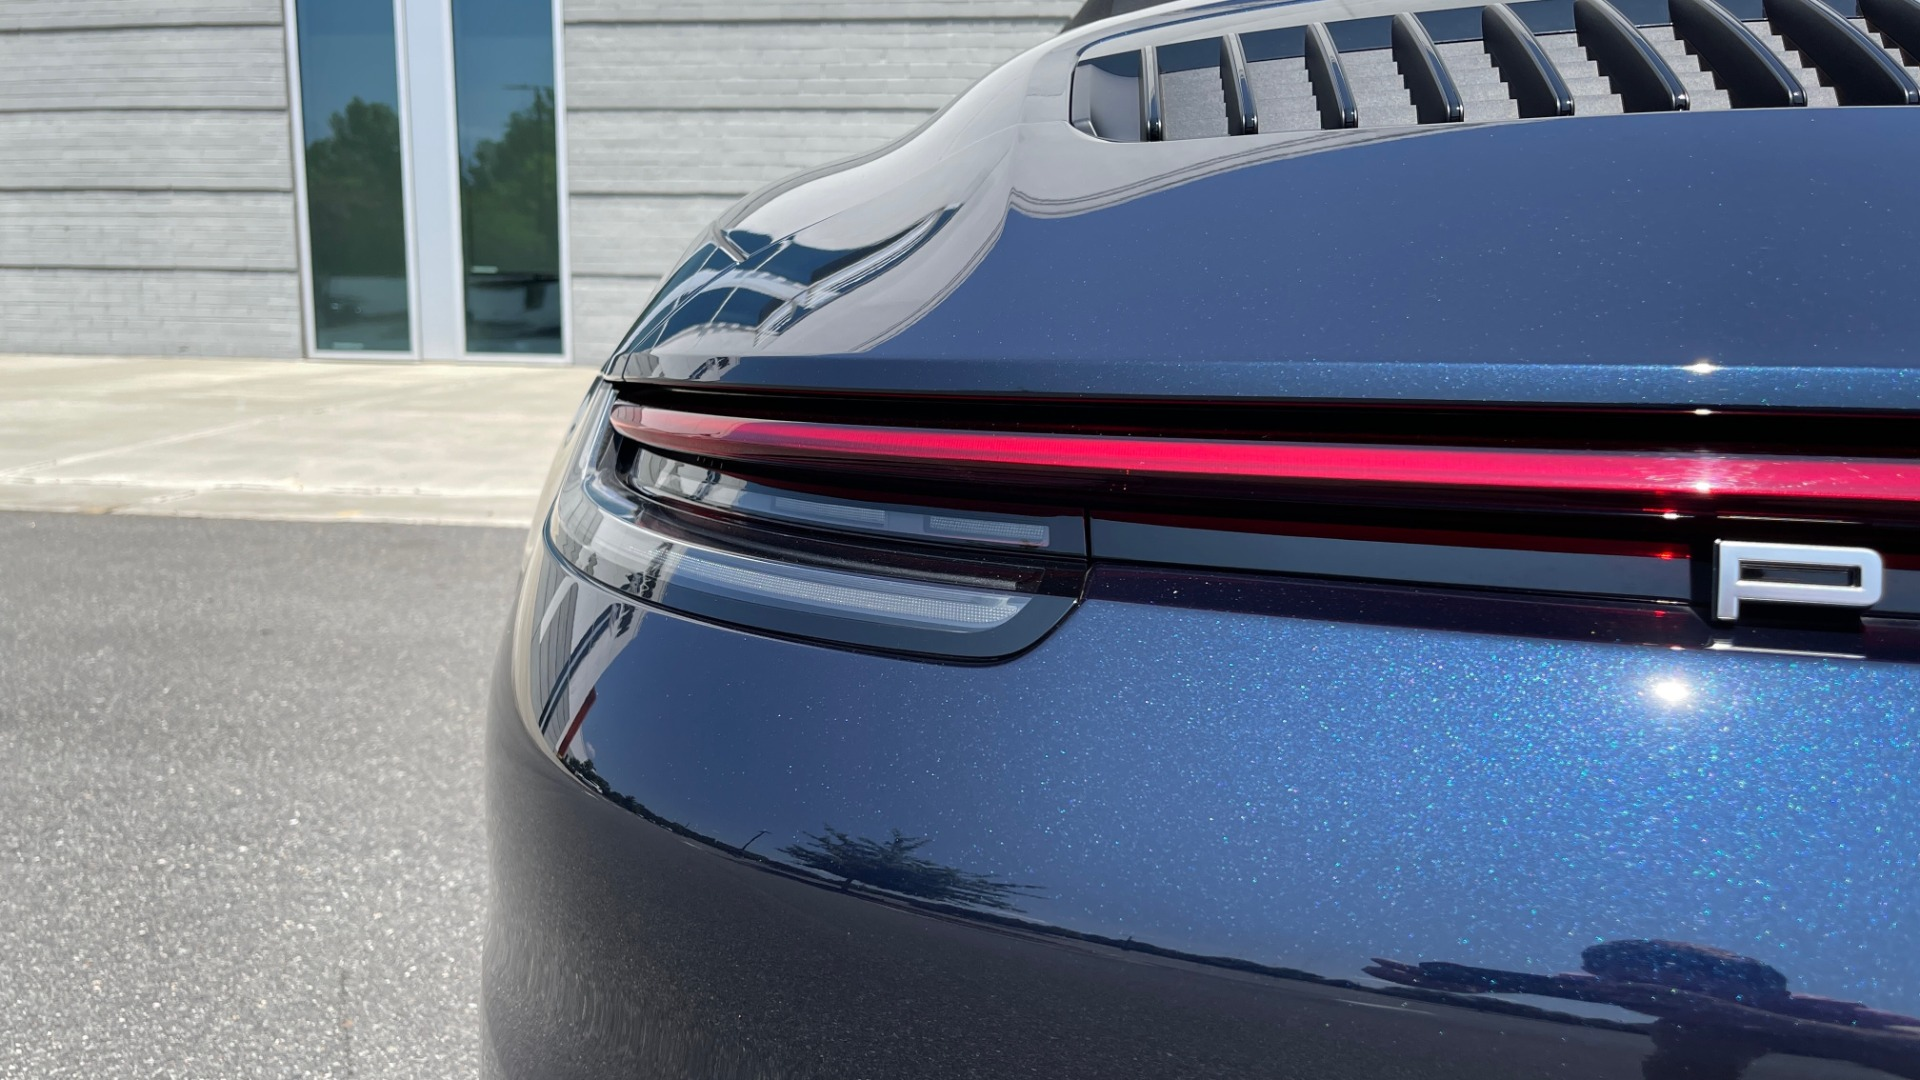 Used 2020 Porsche 911 CARRERA S CABRIOLET PREMIUM SPORT / LCA / ACC / BOSE / REARVIEW for sale $159,995 at Formula Imports in Charlotte NC 28227 32